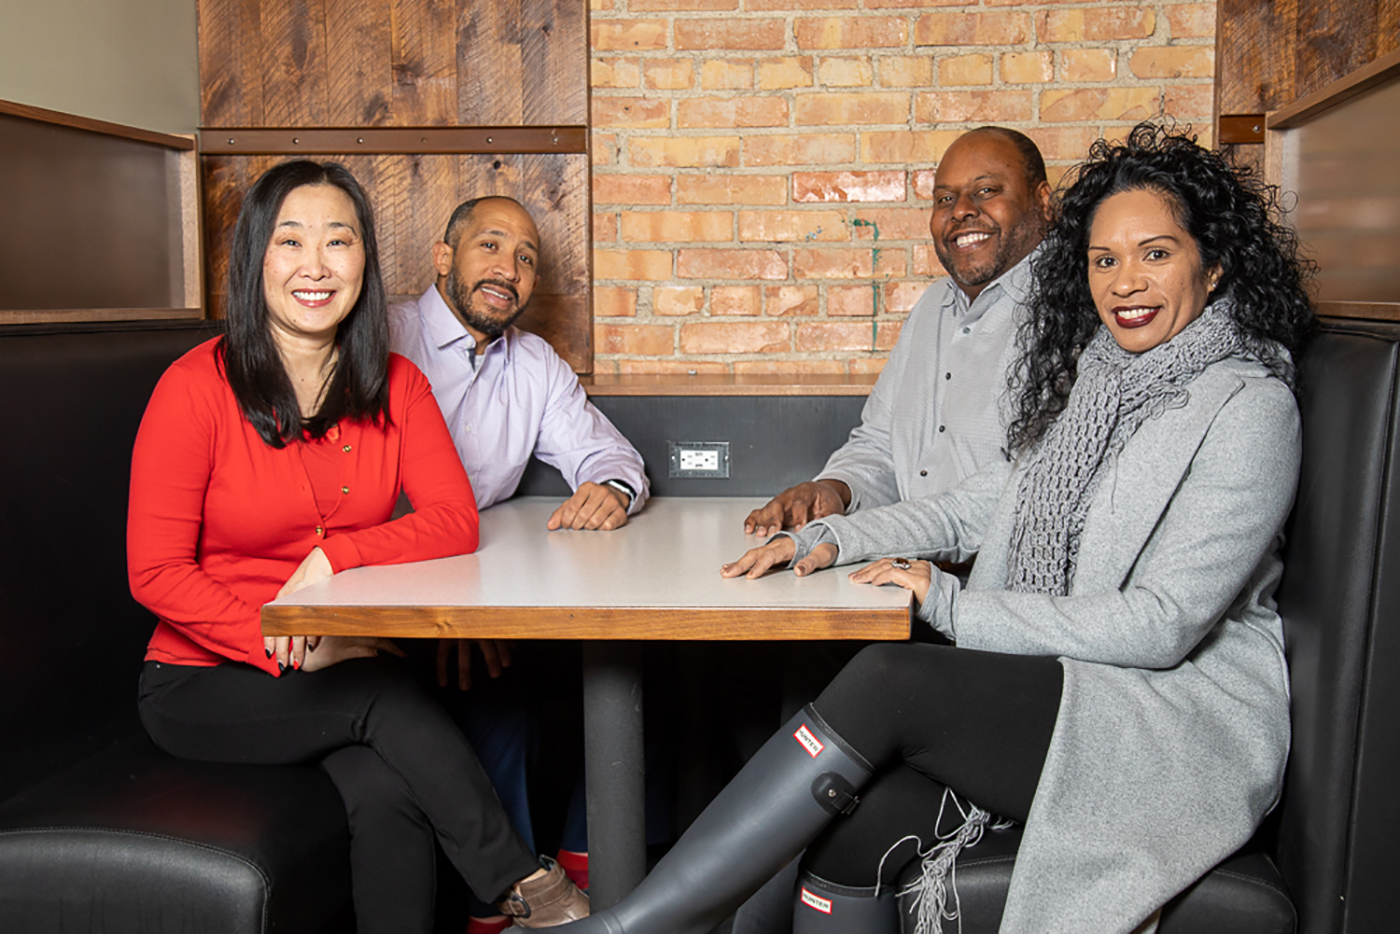 (L–R) Inclusion Experience Project's Sara Jones, James Jackson III, Shawn Newell and Sui Lang L. Panoke provide tools for local businesses and their leaders to champion diversity.